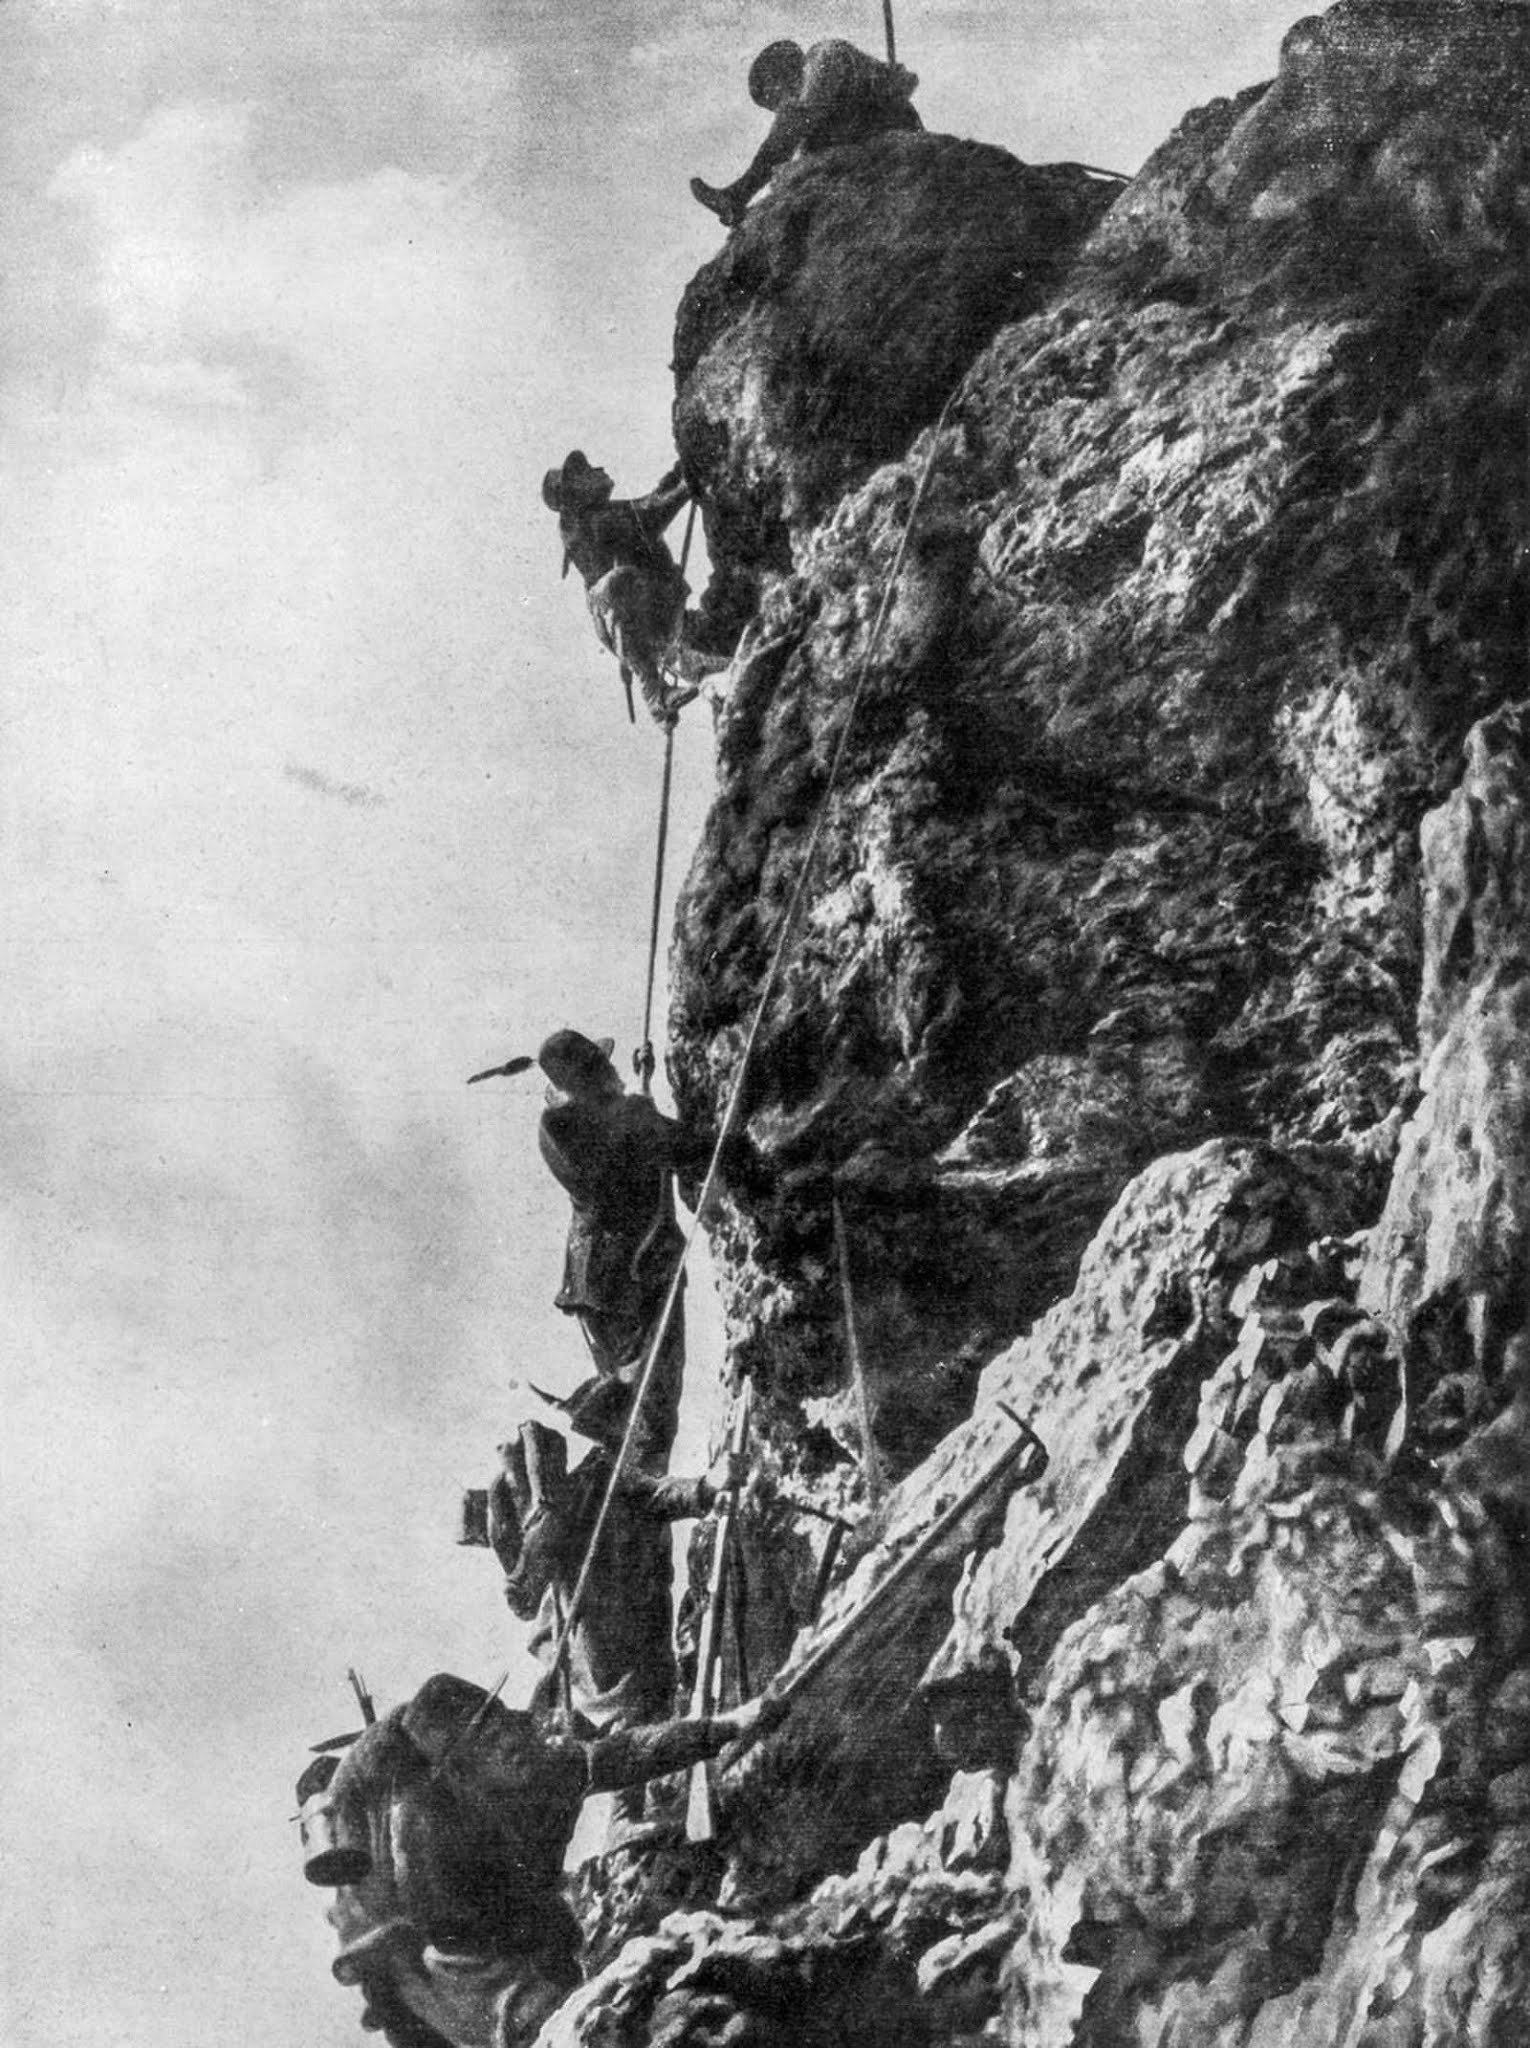 Italian soldiers scale Monte Nero on the Karst plateau during the Second Battle of the Isonzo. 1915.